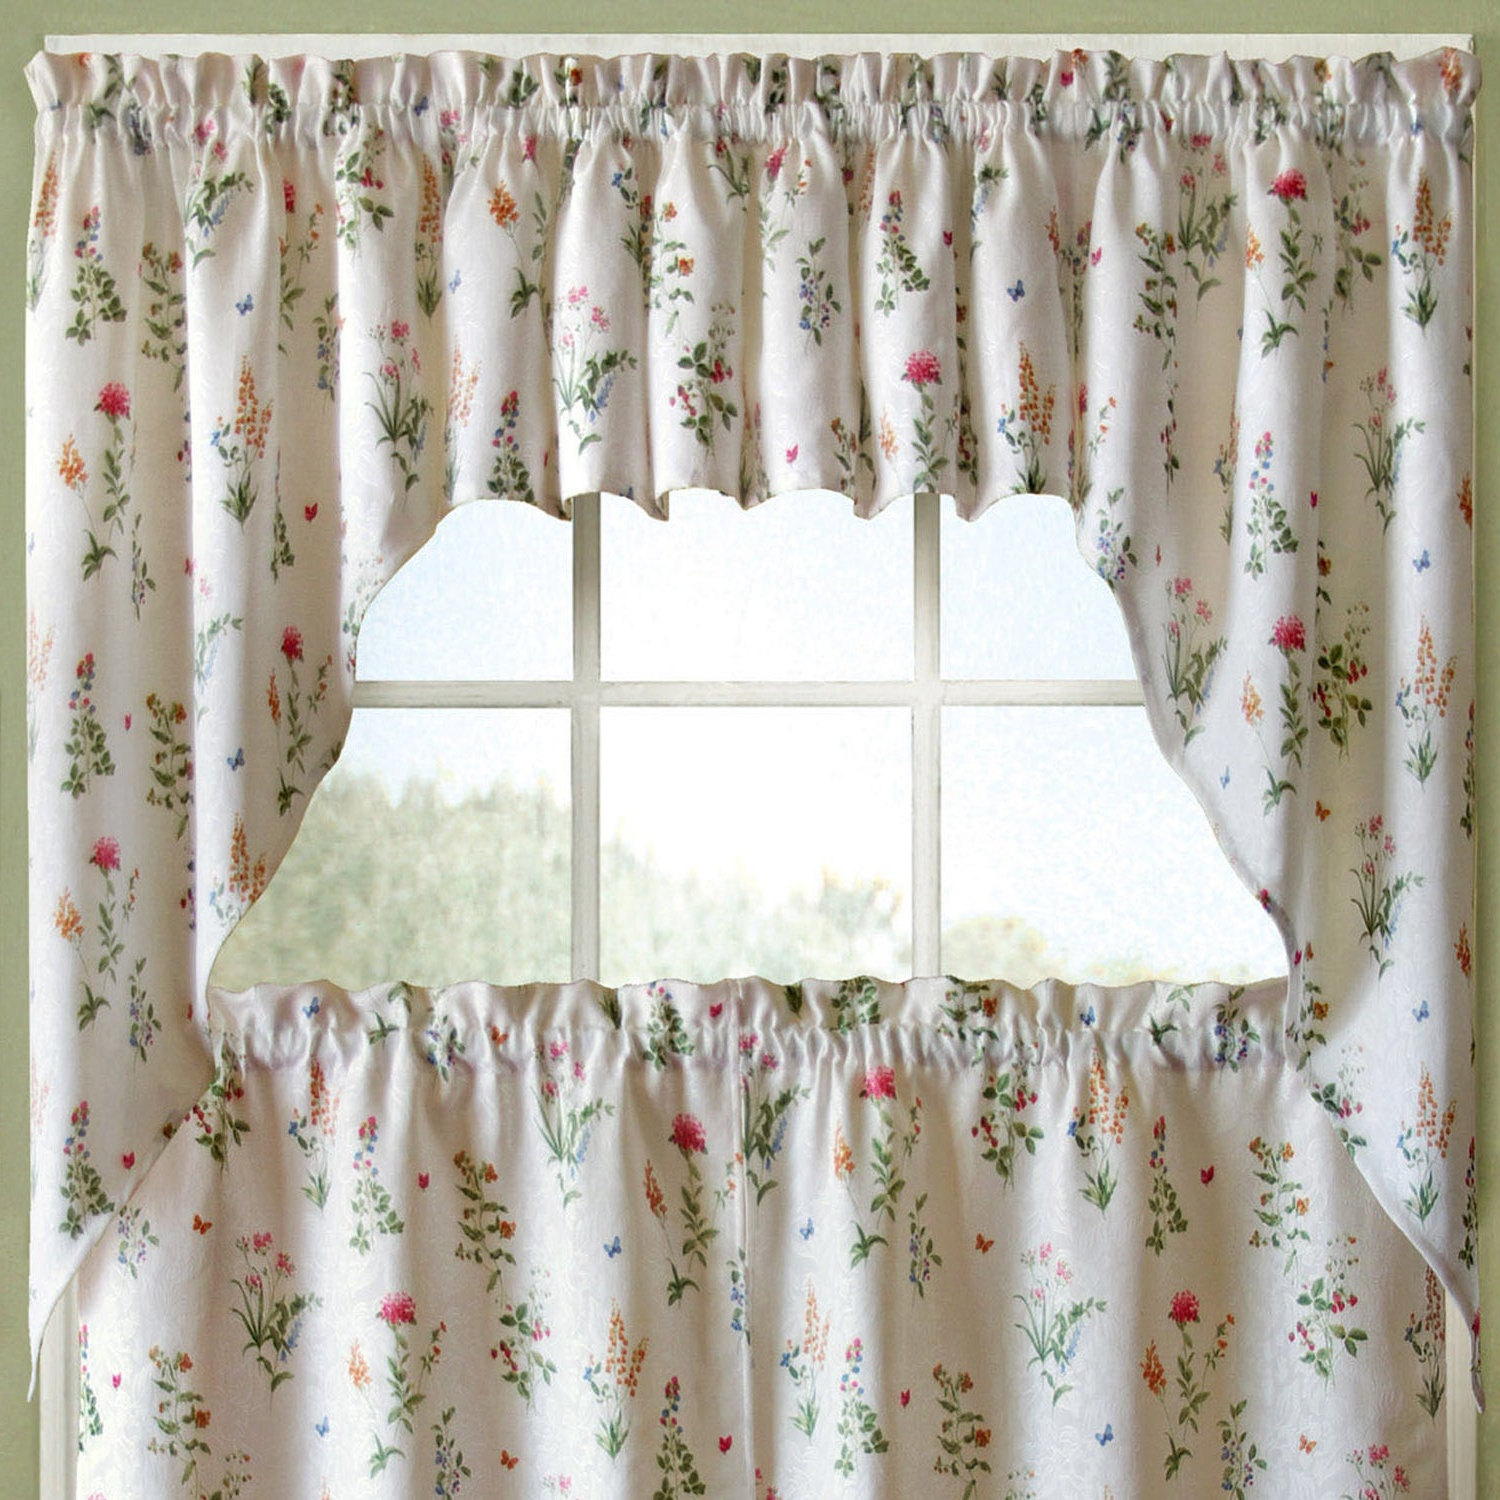 Favorite Vibrant Floral Garden Motif Jacquard Window Curtain Pieces Pertaining To Floral Lace Rod Pocket Kitchen Curtain Valance And Tiers Sets (Gallery 15 of 20)